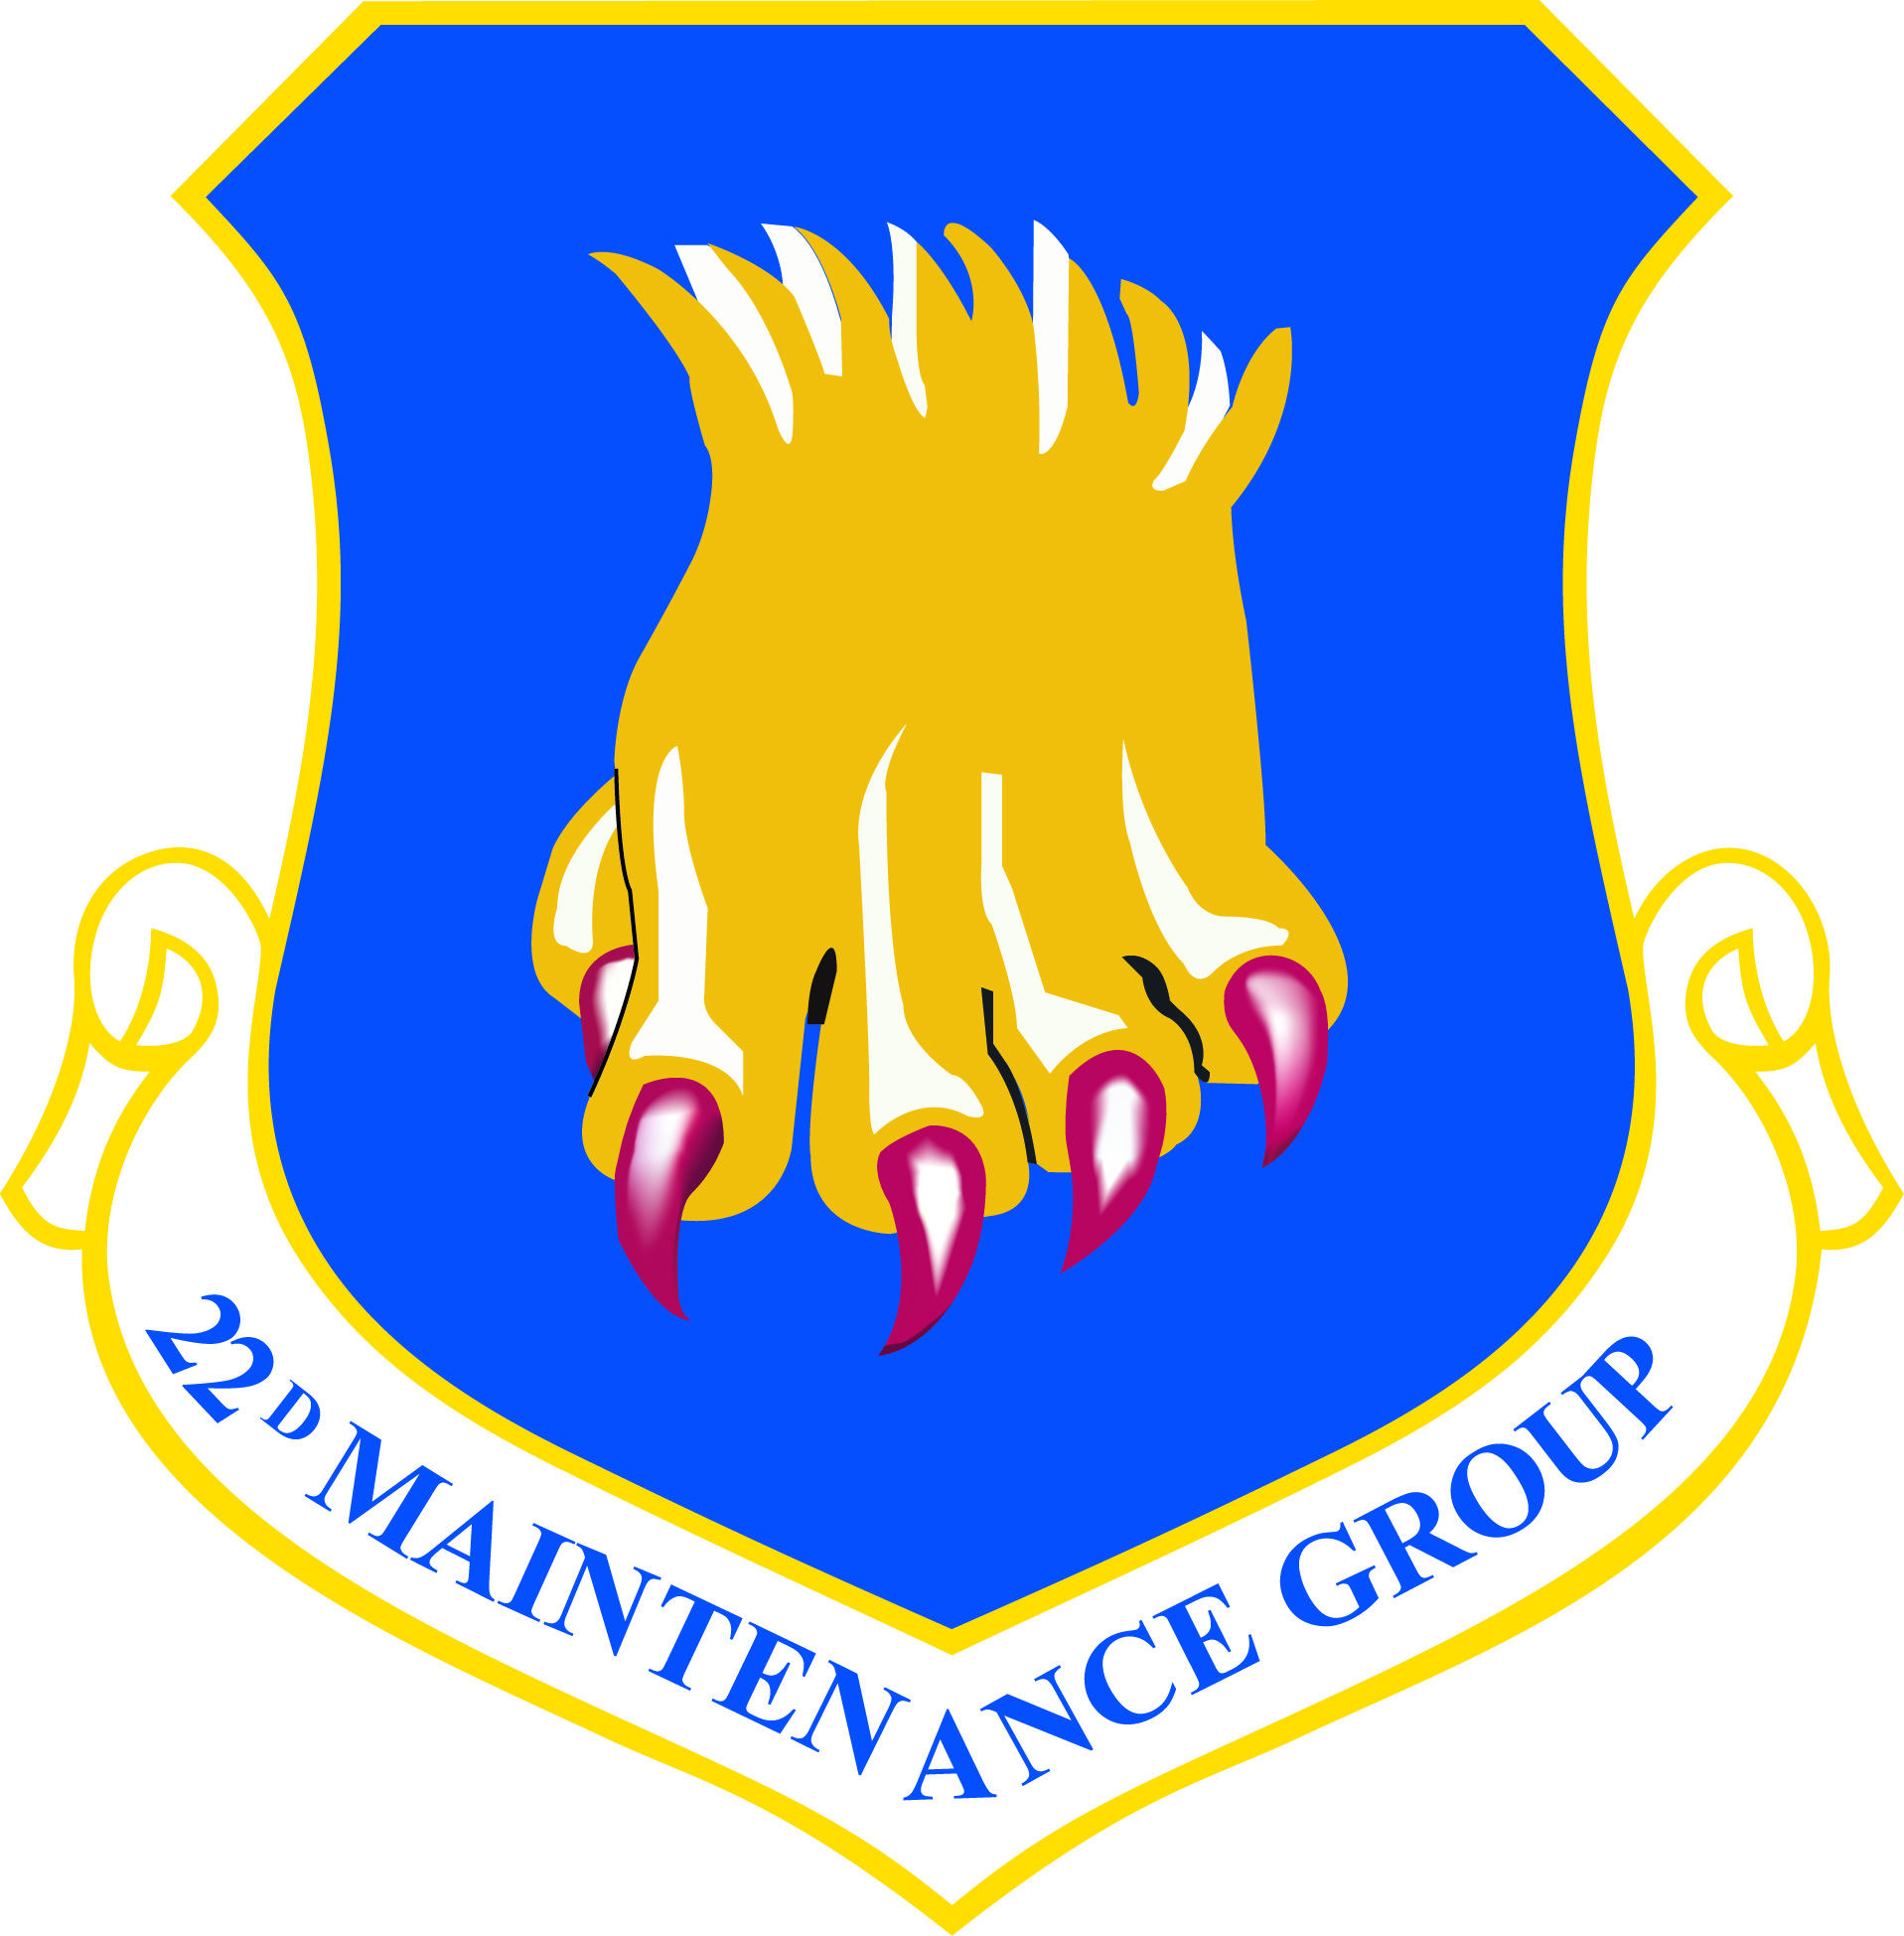 22nd maintenance group mcconnell